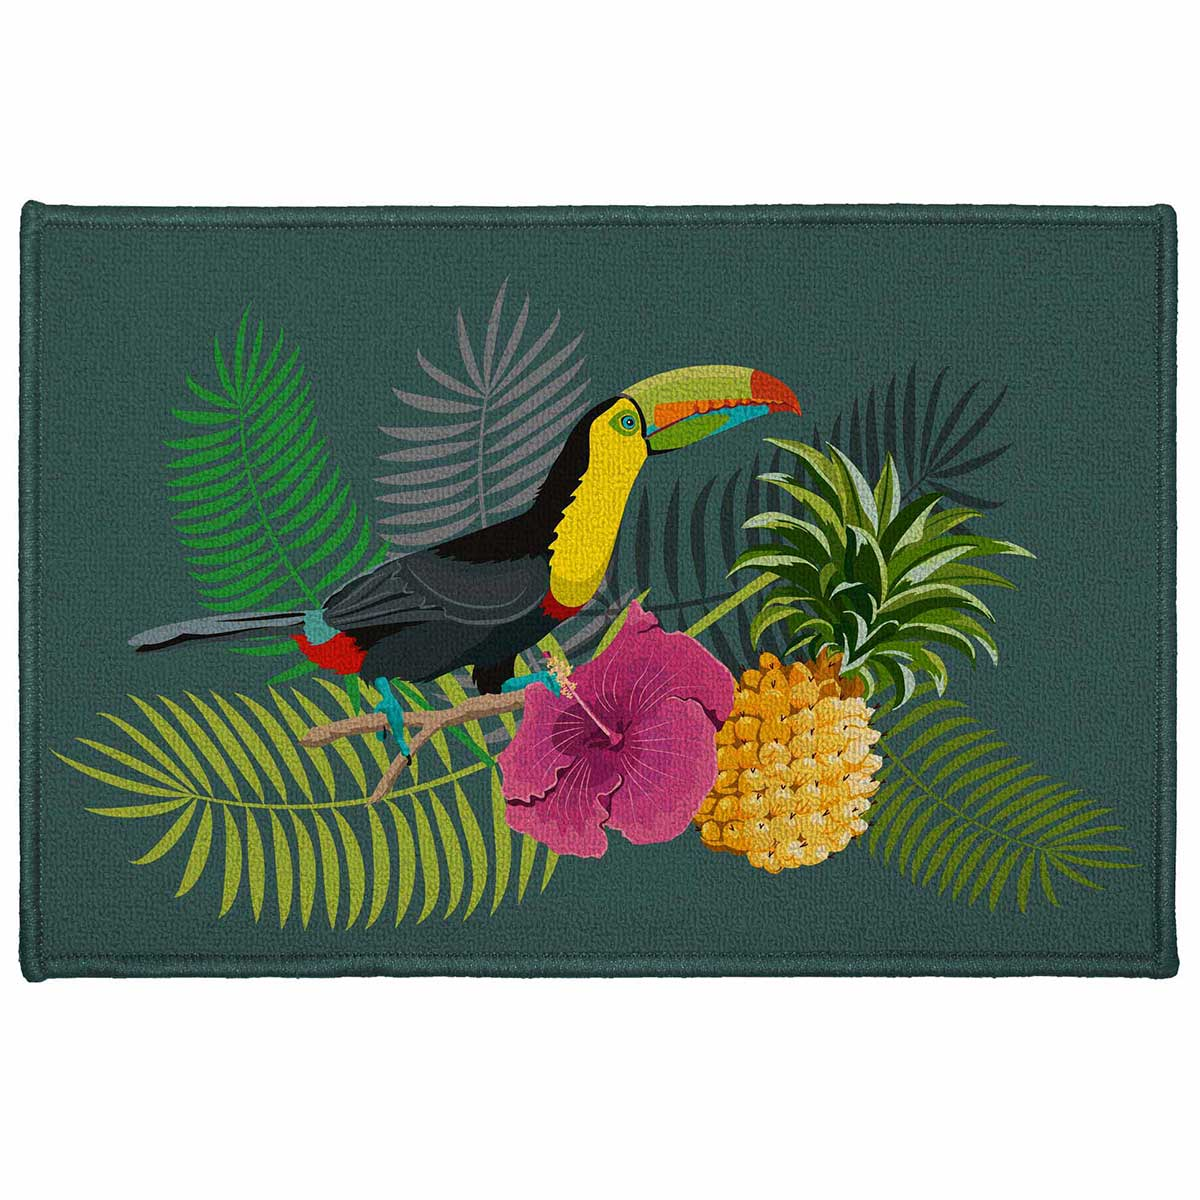 Tapis décoratif rectangulaire toucan - Multicolore - 40 x 60 cm